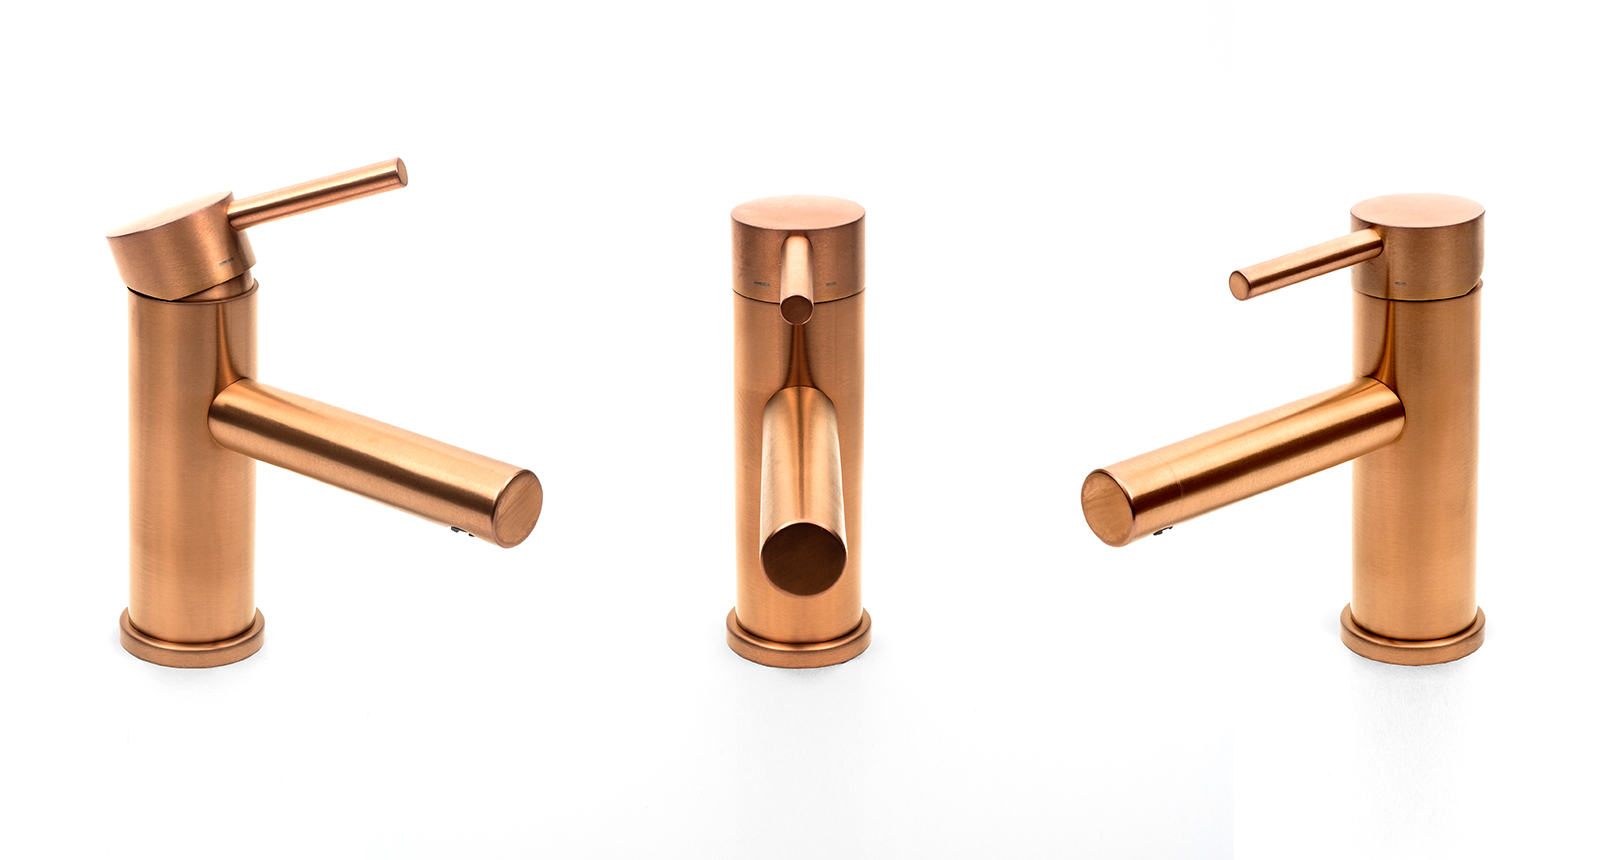 Here is an example of how to visually present a tap product, this is the JDL DB Monobloc Mixer tap DB1650 in Double Stone Steel PVD coloured stainless steel Copper Brush. These images have a plain background and the tap is shown in its entirety from different angles.